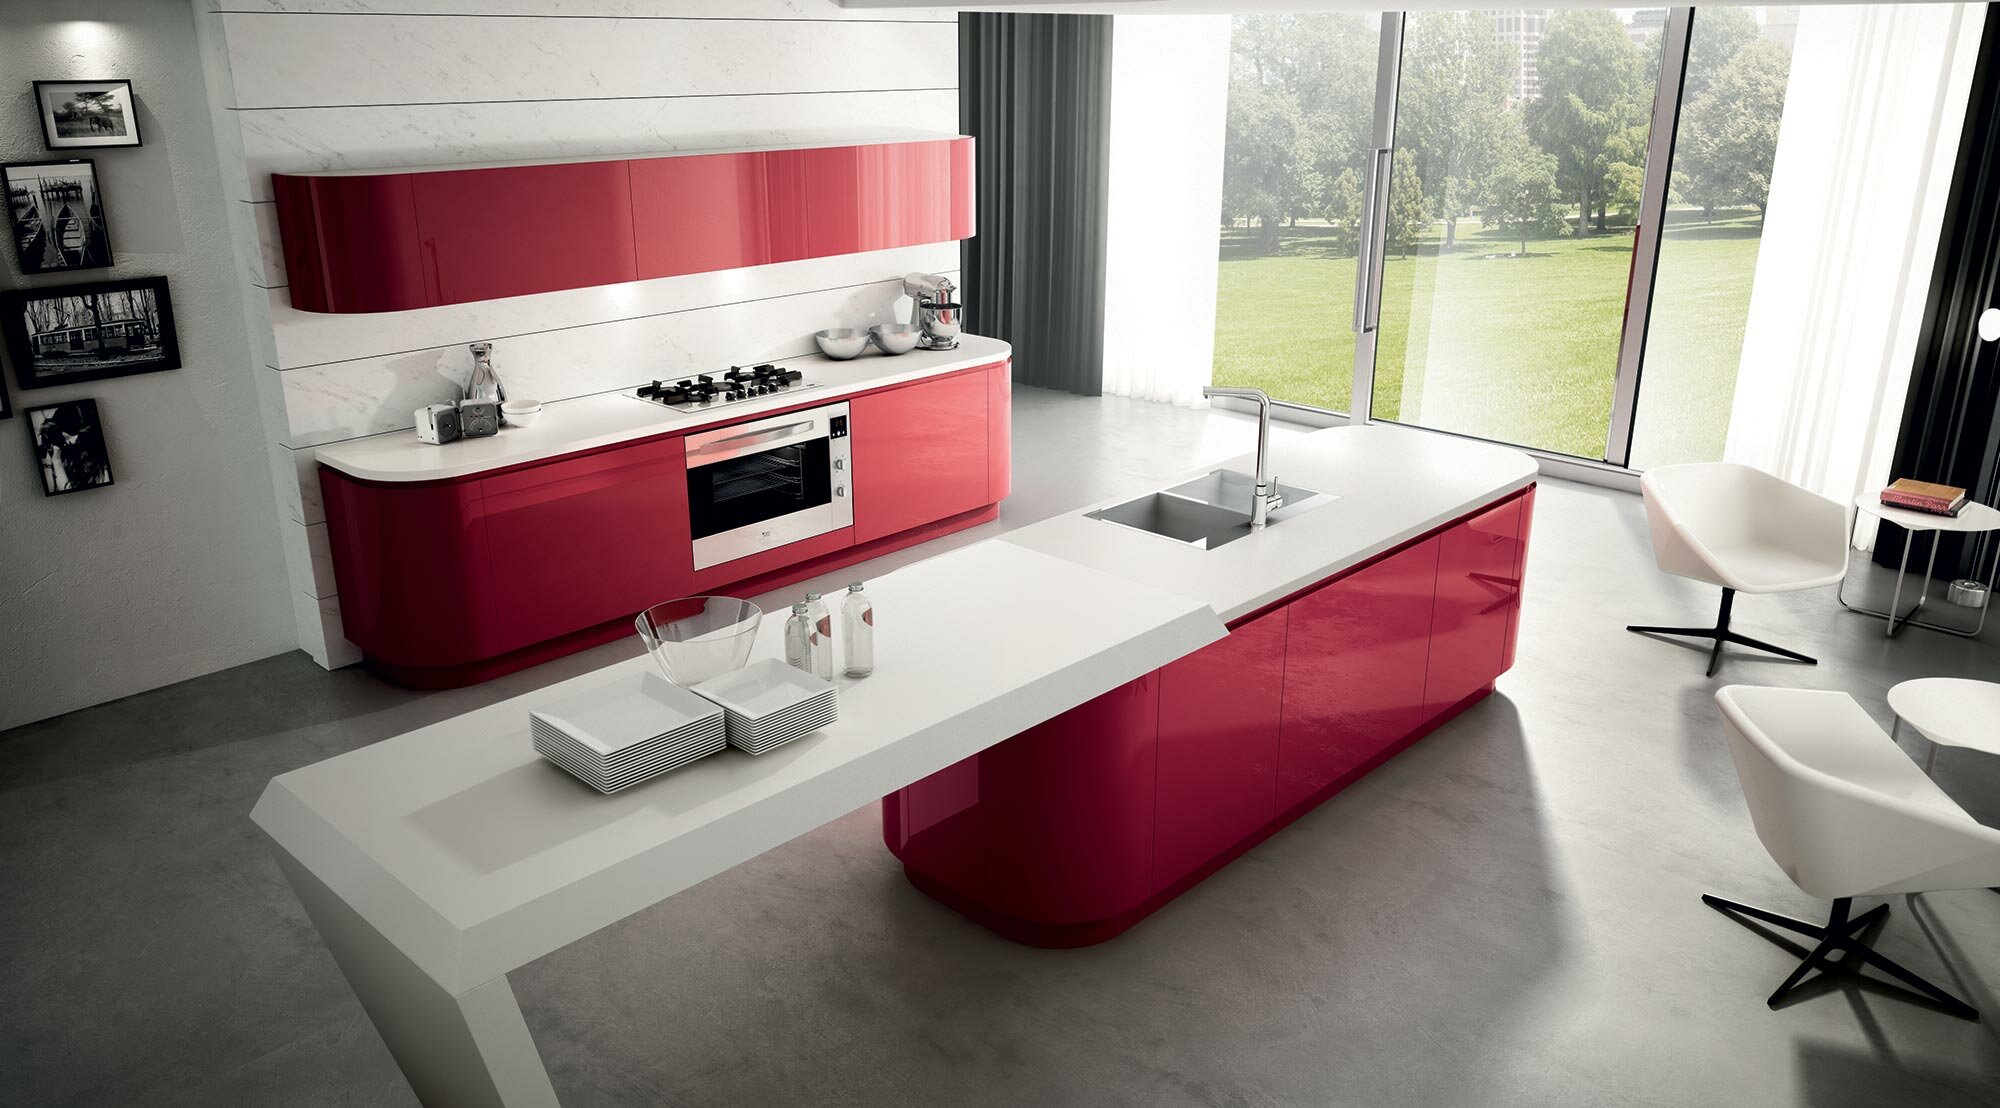 A modern kitchen design in white and burgundy red color